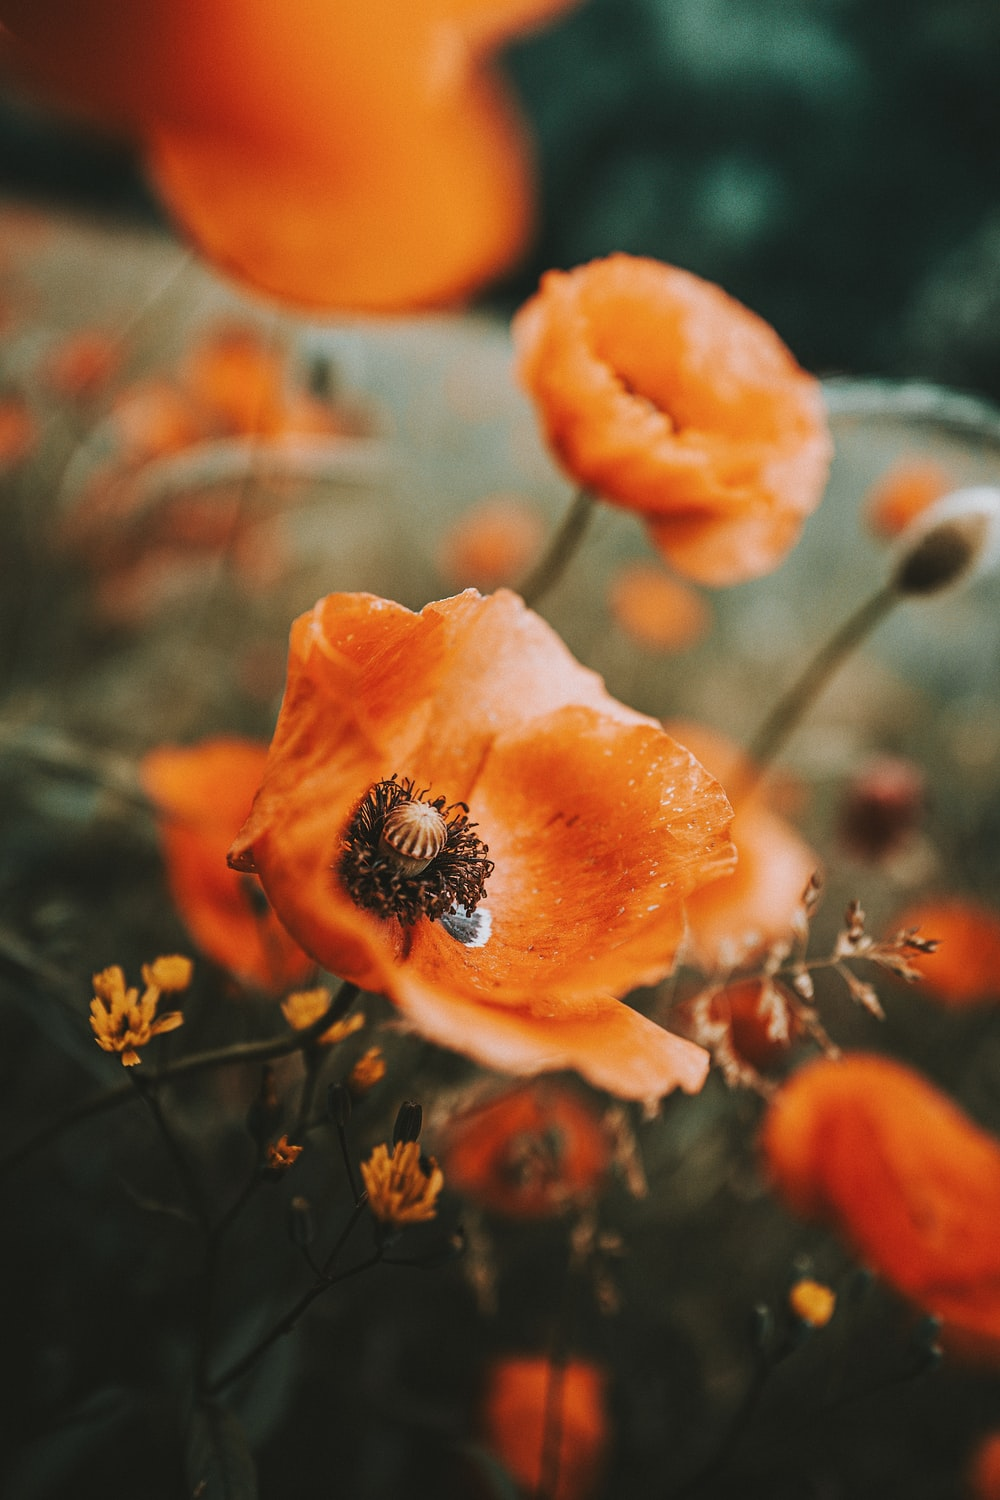 orange flower in tilt shift lens